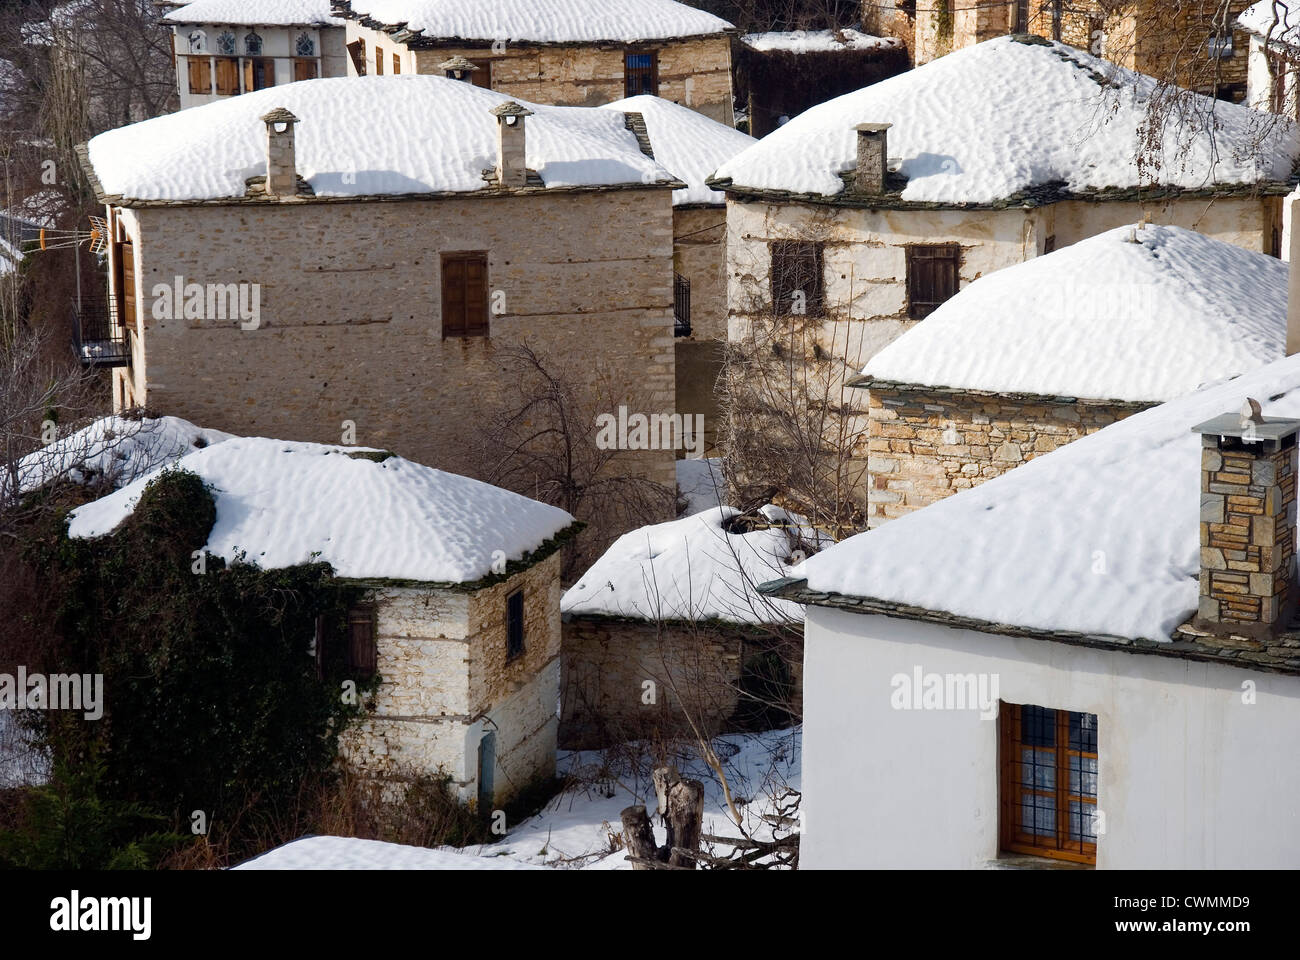 Snowcapped houses in the mountain of village Pinakates in winter (Pelion peninsula, Thessaly, Greece) - Stock Image